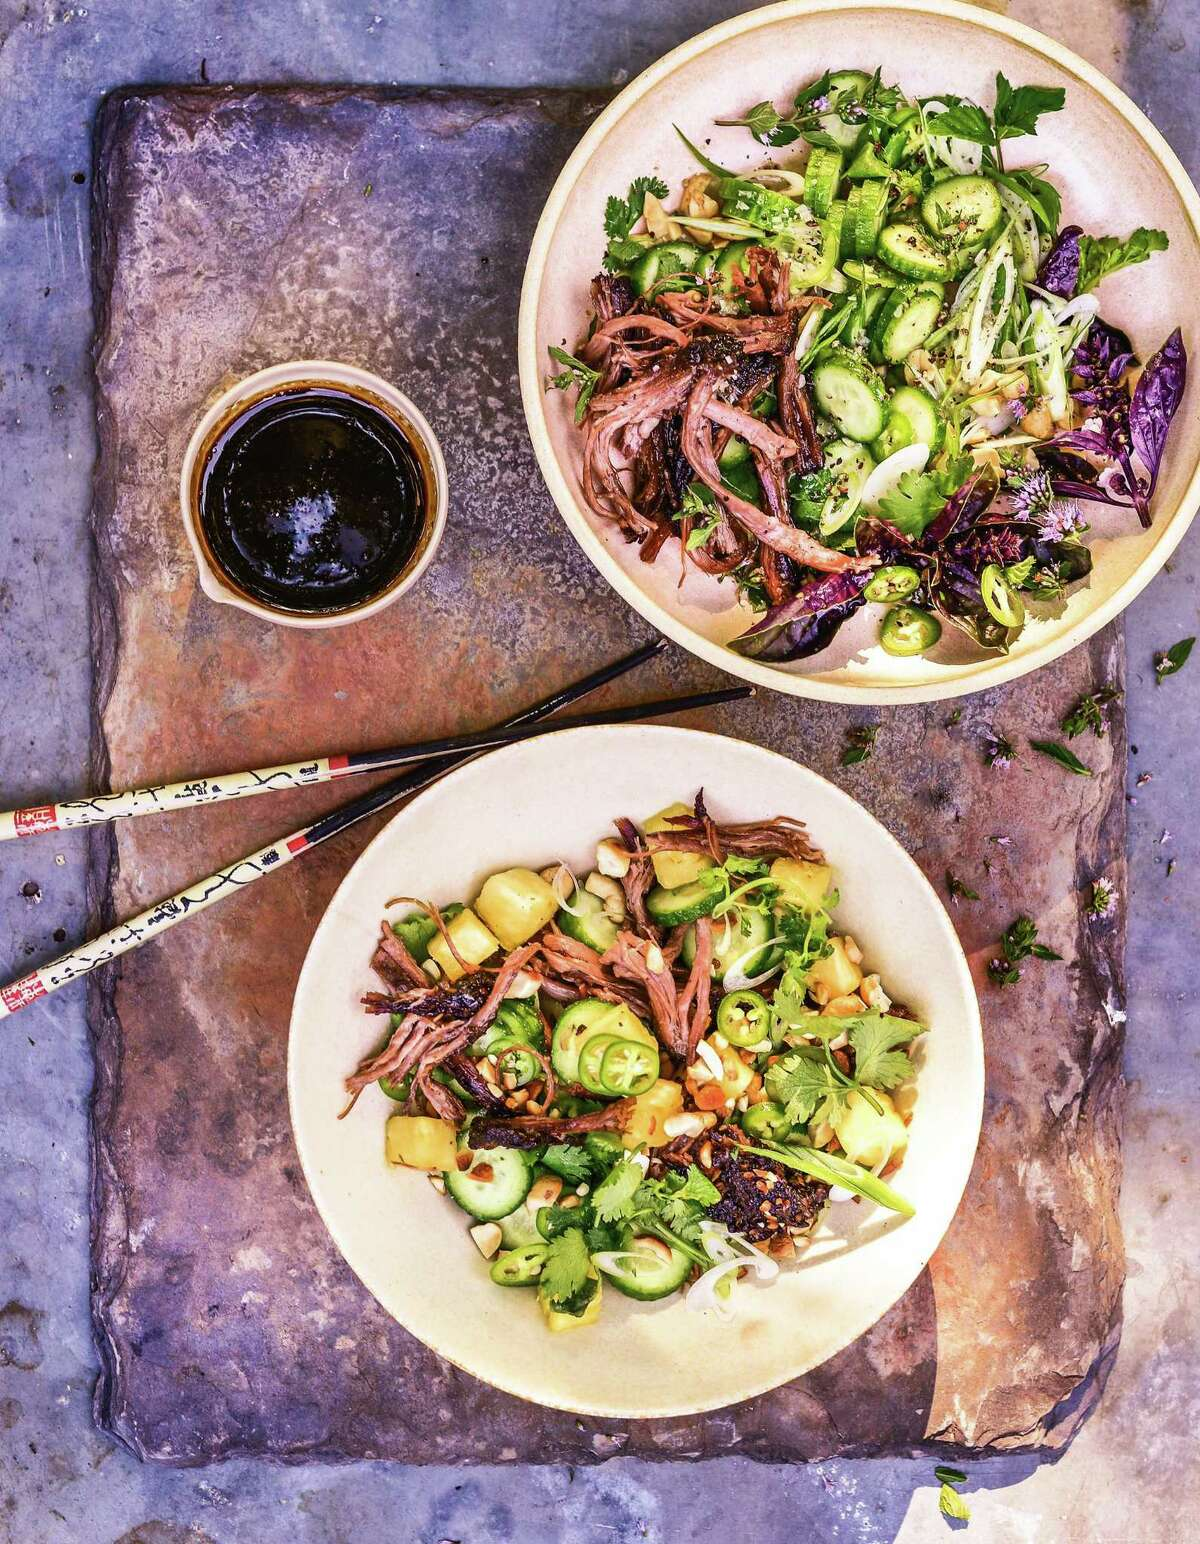 """Vietnamese Crispy Salad from""""The Brisket Chronicles: How to Barbecue, Braise, Smoke, and Cure the World's Most Epic Cut of Meat"""" by Steven Raichlen (Workman, $19.95)."""